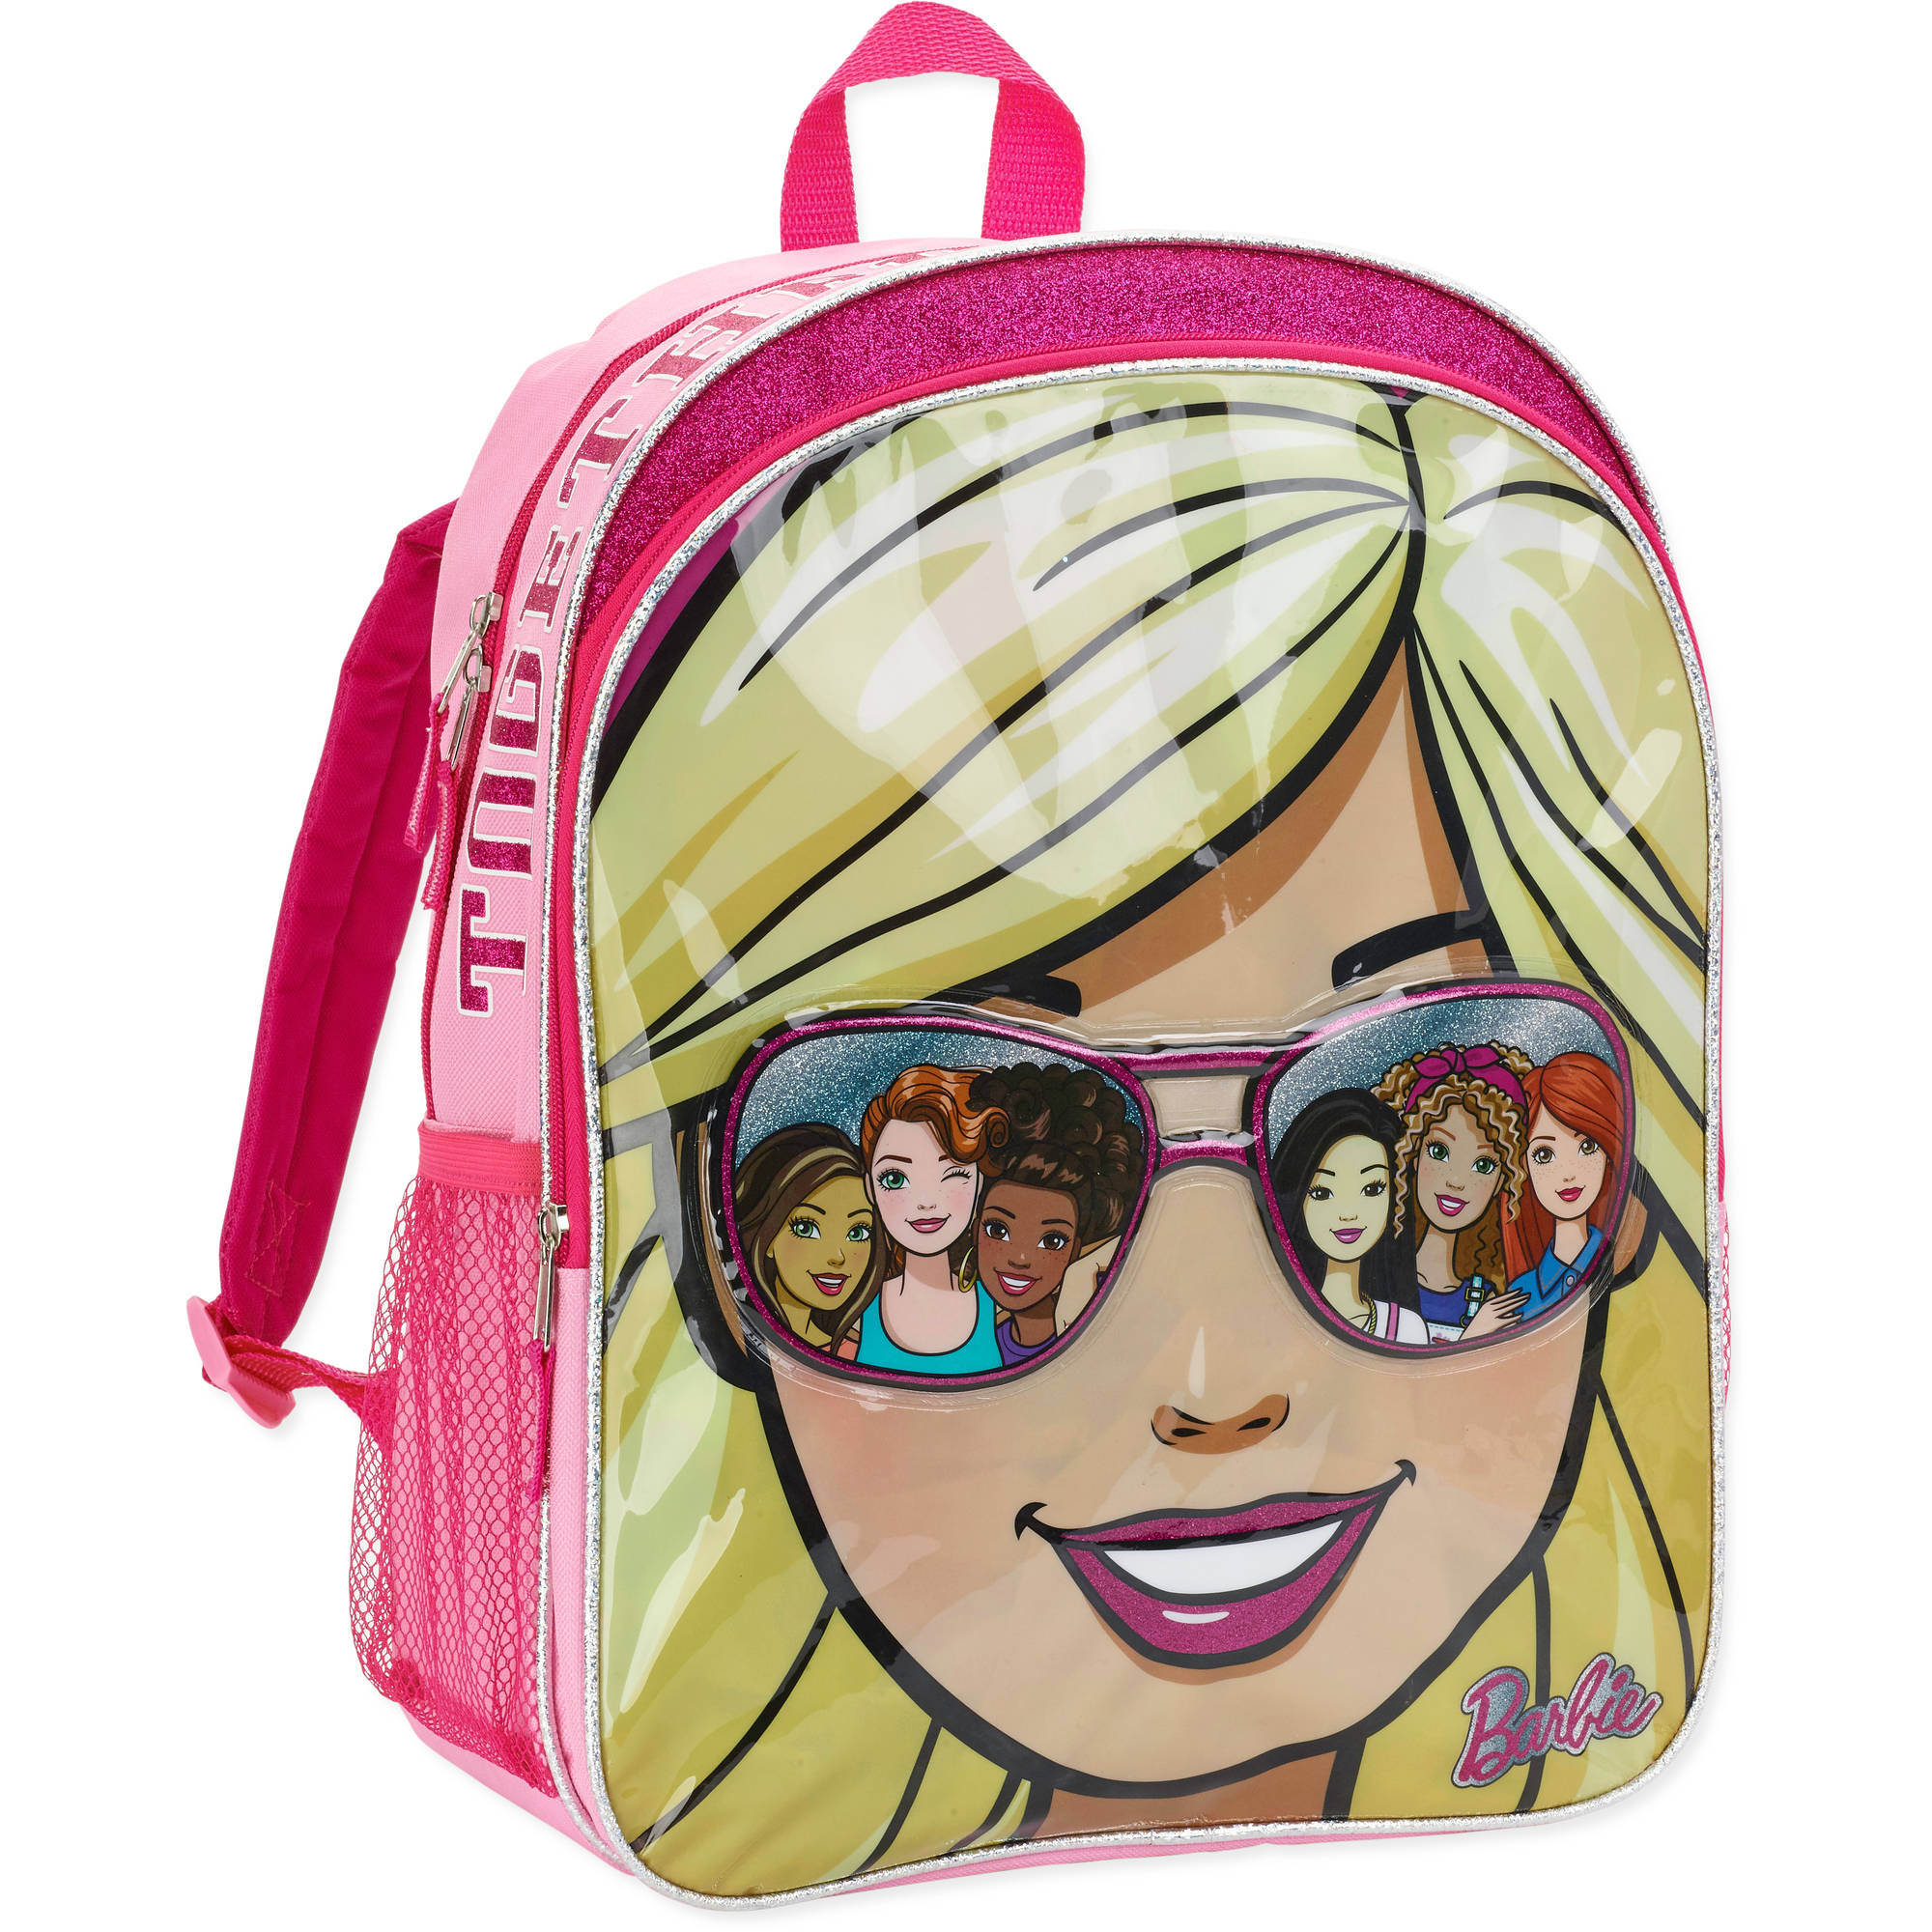 Barbie Star Shine Kids Backpack